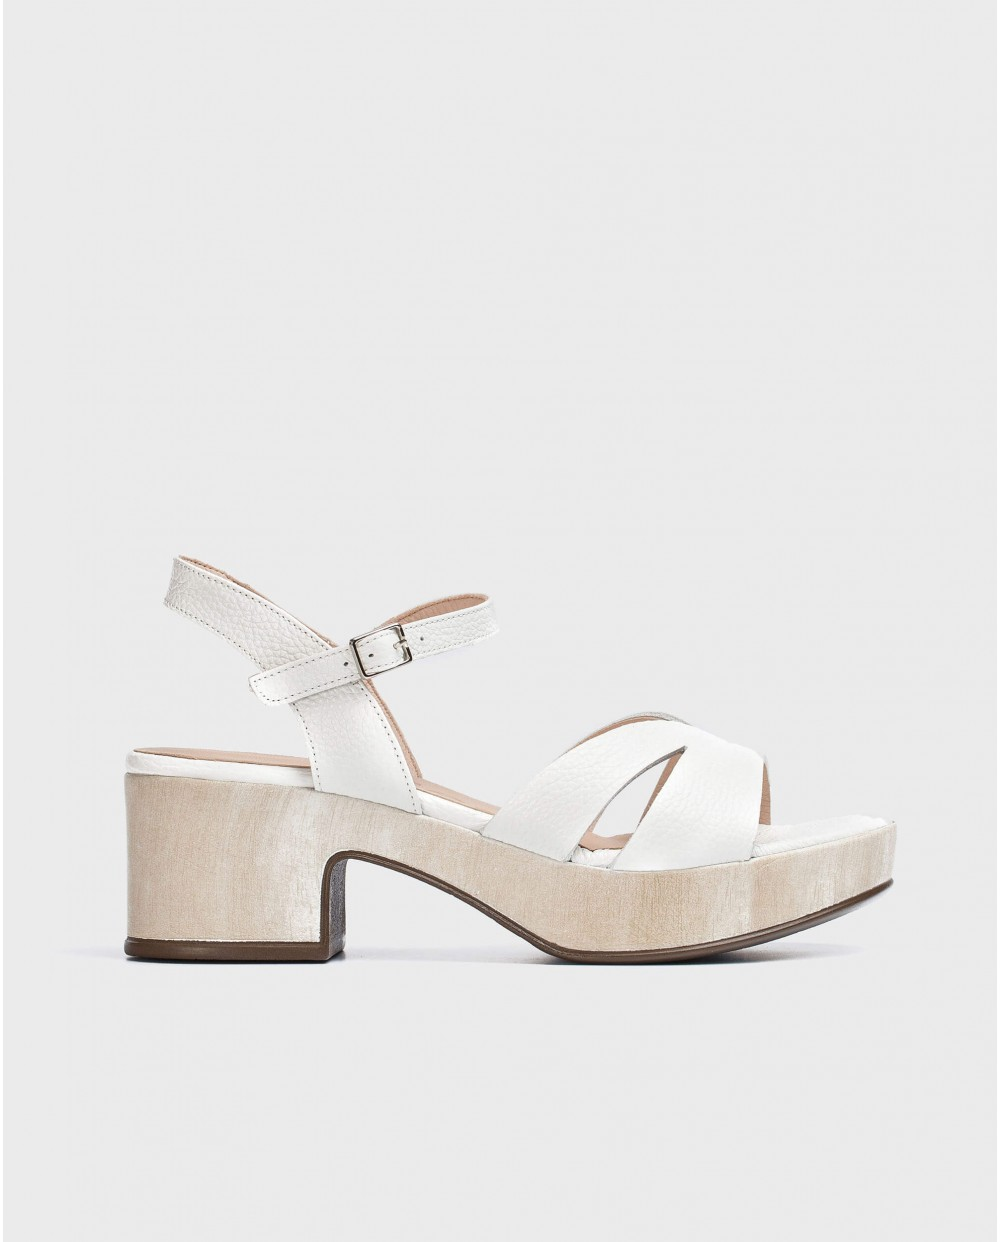 Wonders-Heels-Wedge sandal with V cut out